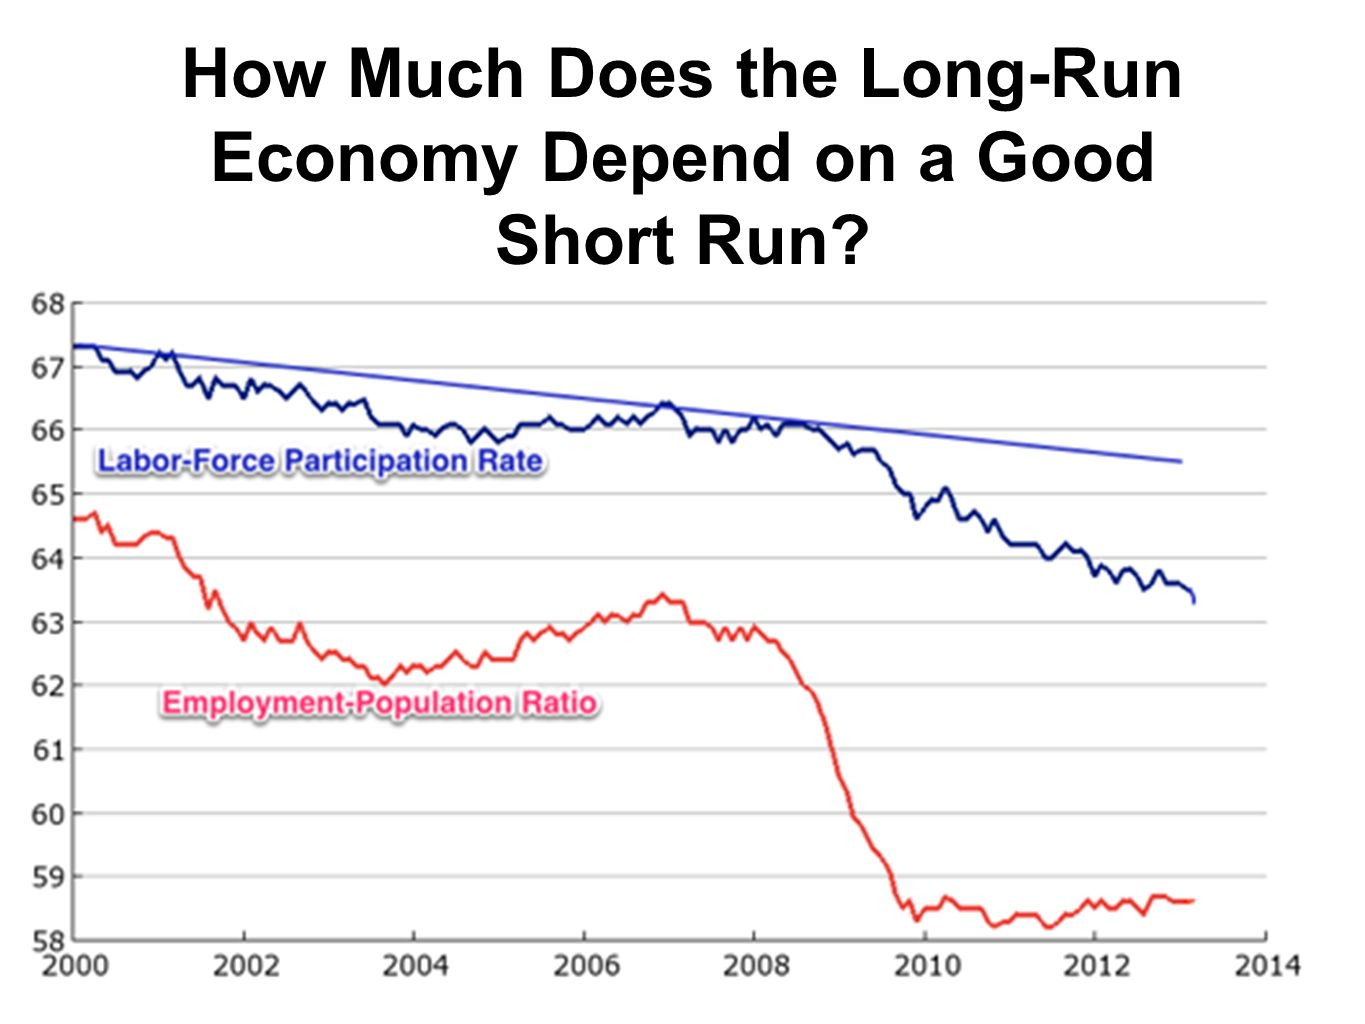 How Much Does the Long-Run Economy Depend on a Good Short Run